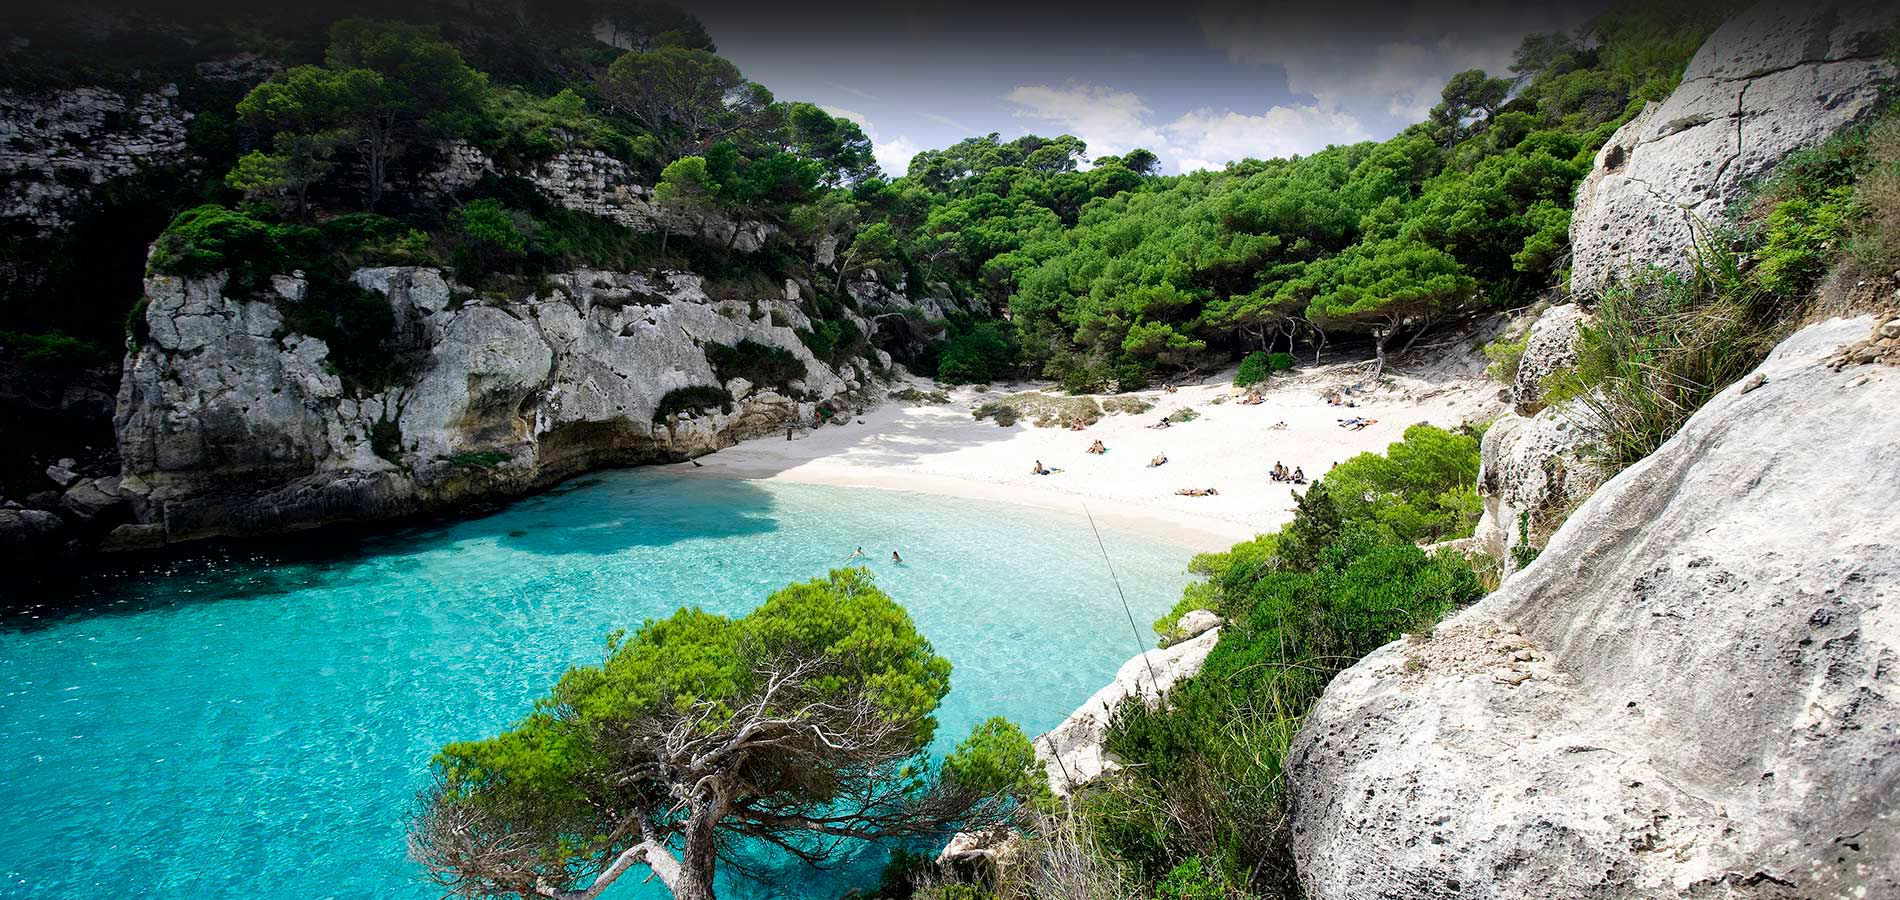 Macarelleta beach, Menorca, Balearic Islands